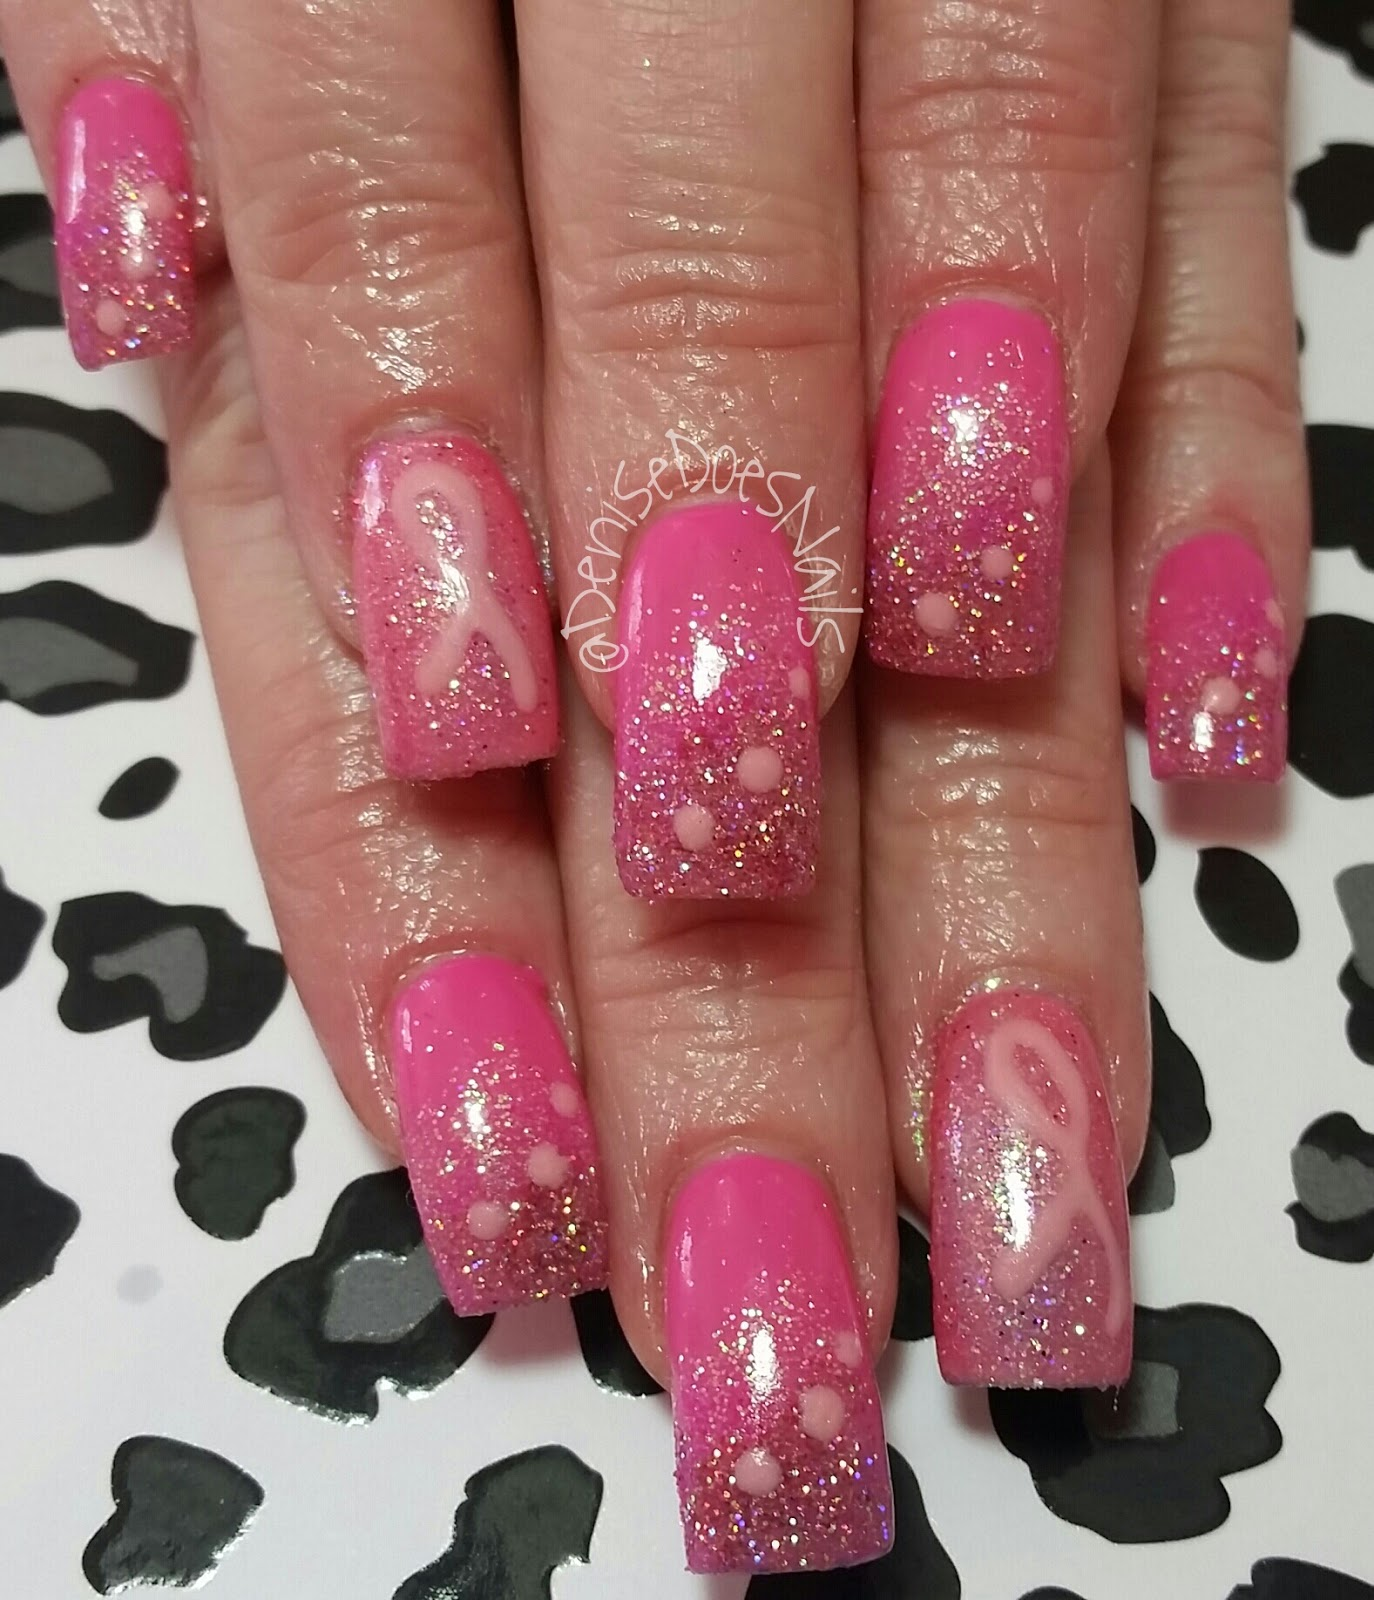 Nail Art by Denise Groves: Breast Cancer Awareness Nails